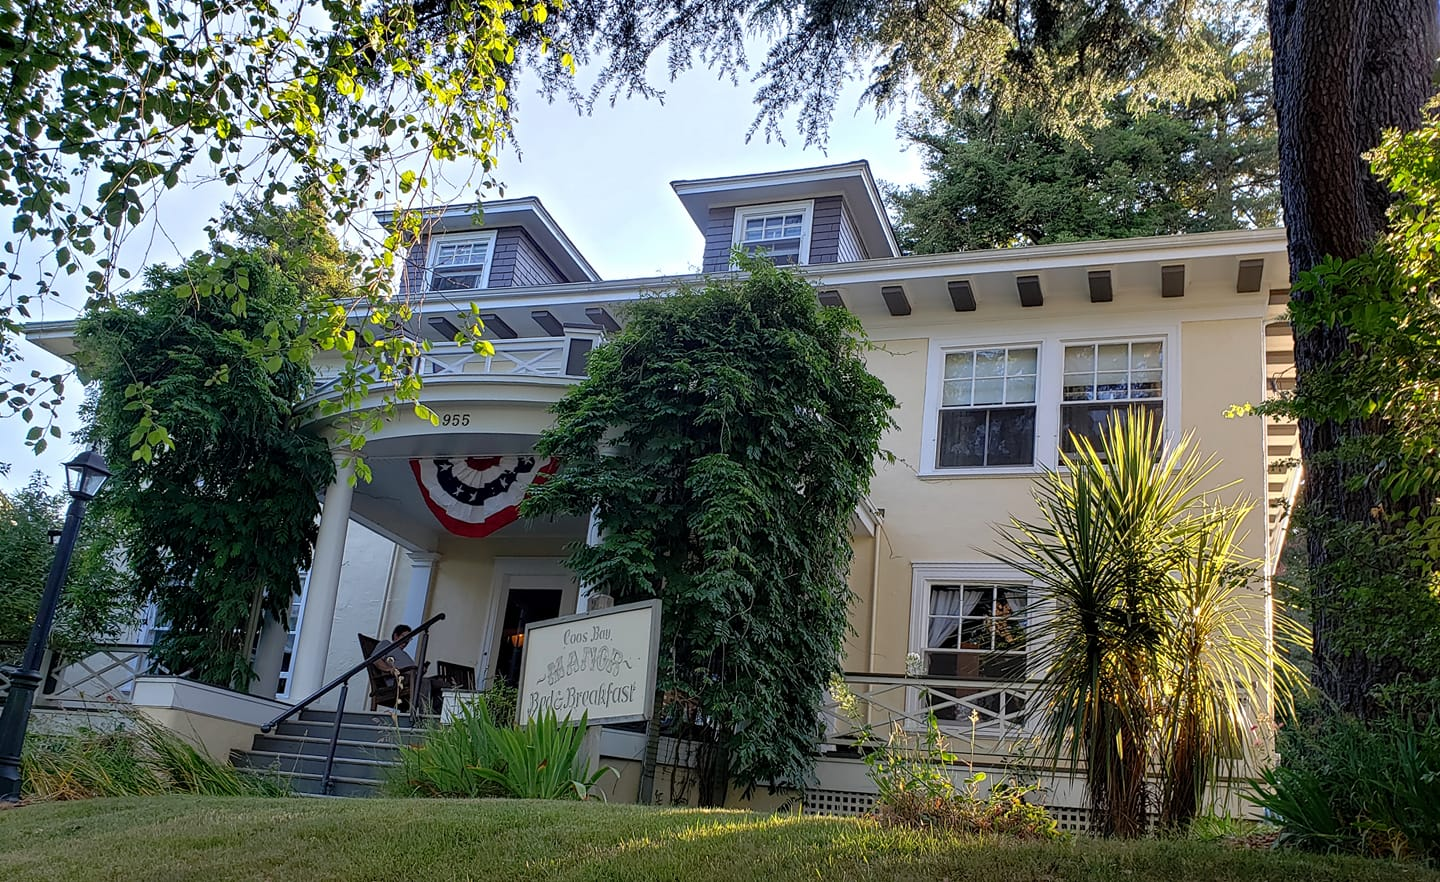 Coos Bay Manor Bed & Breakfast.jpg